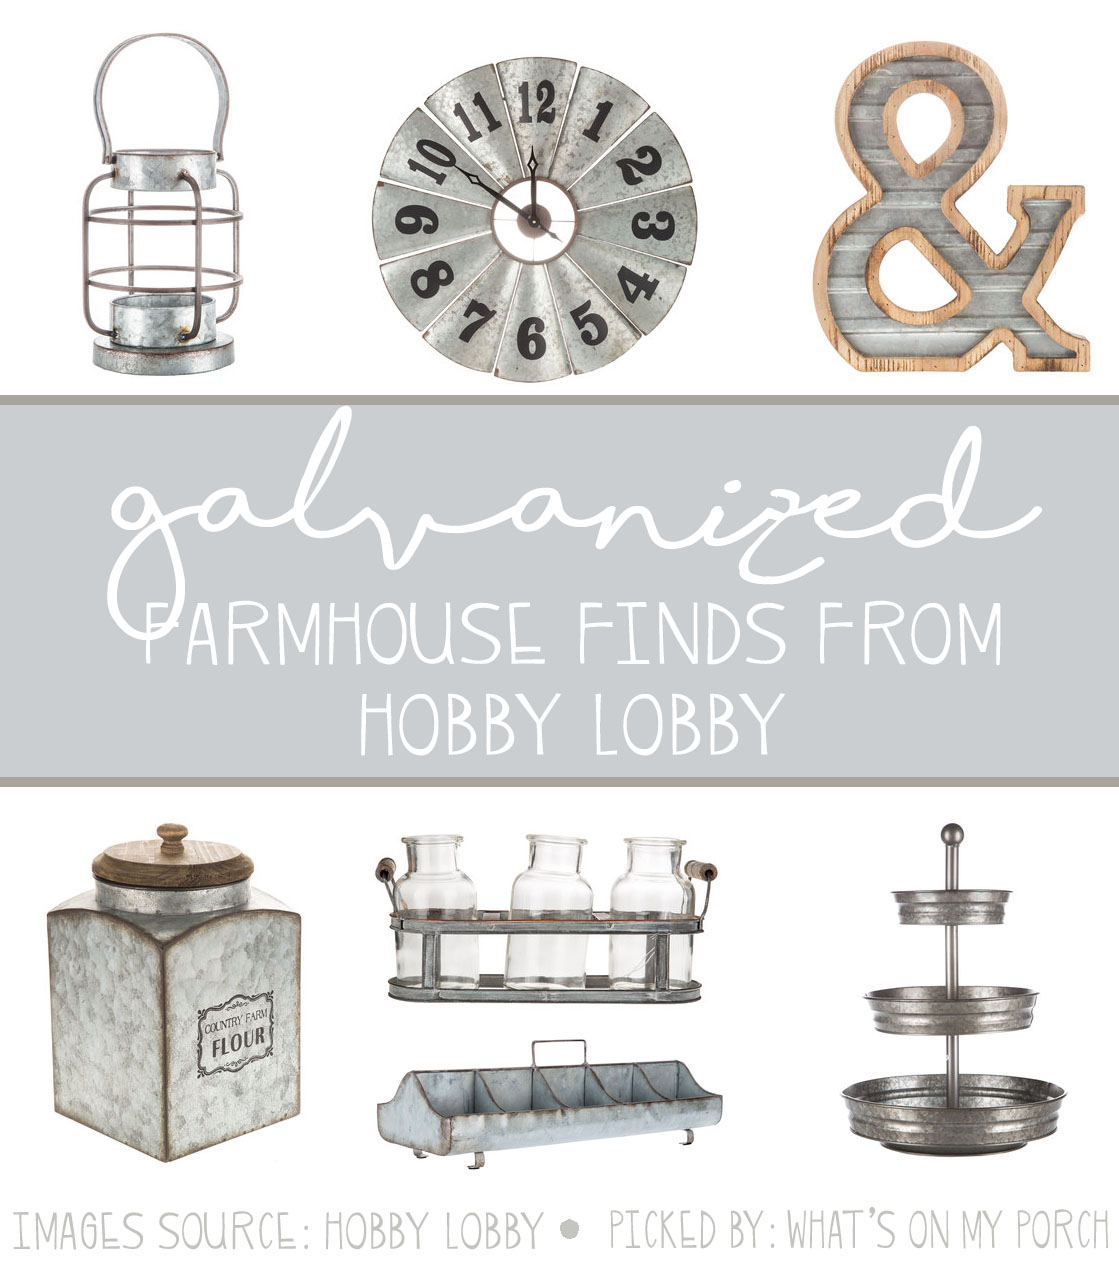 7df6fd64f868e I am gaga for galvanized home décor! I just love that faded silver look!  Here are a few galvanized farmhouse finds from Hobby Lobby.